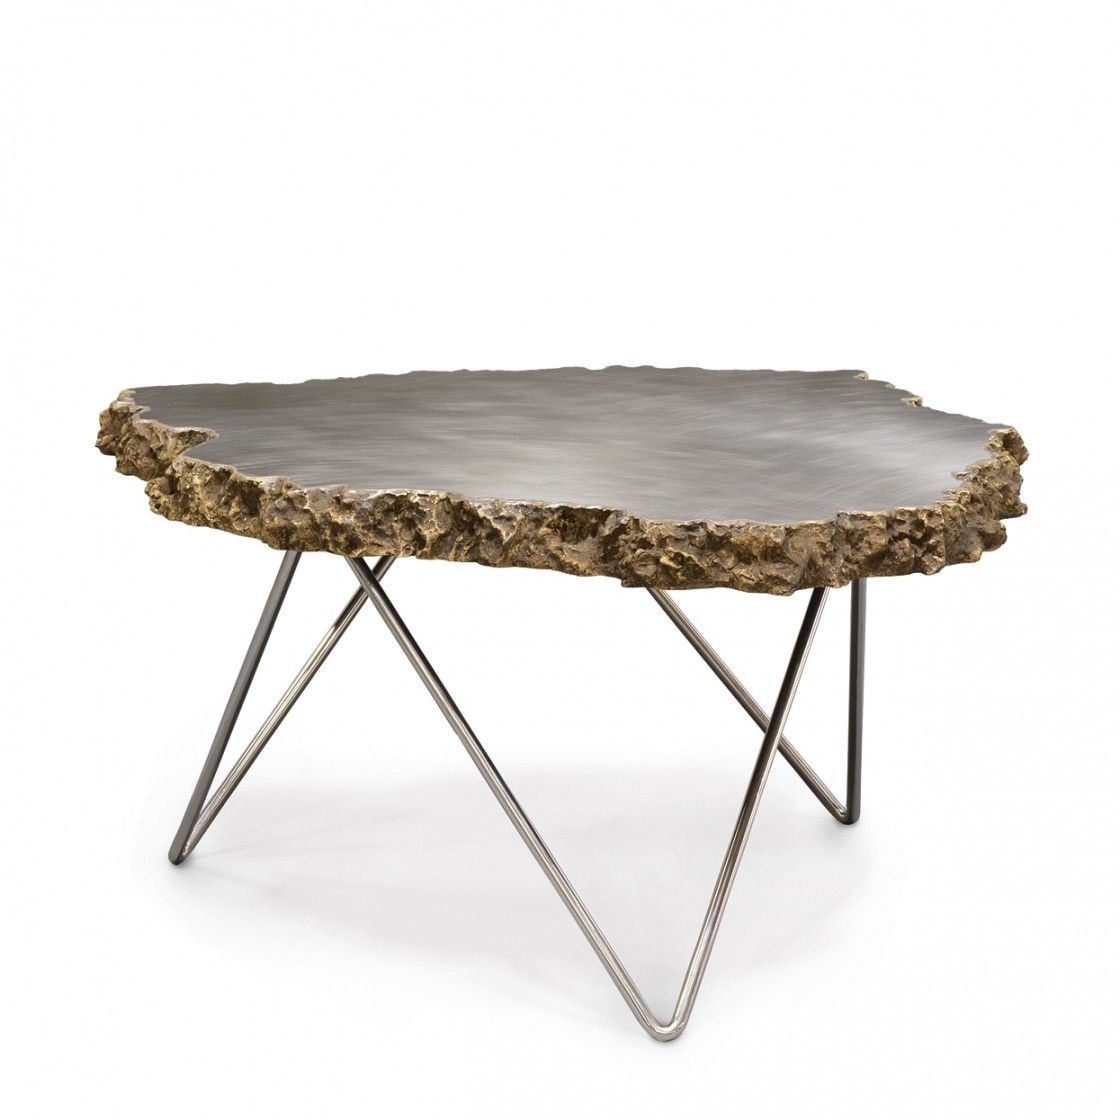 Stone Coffee Tables With Modern Style: Artistic Live Edge Natural Stone Coffee Table. Prehistoric